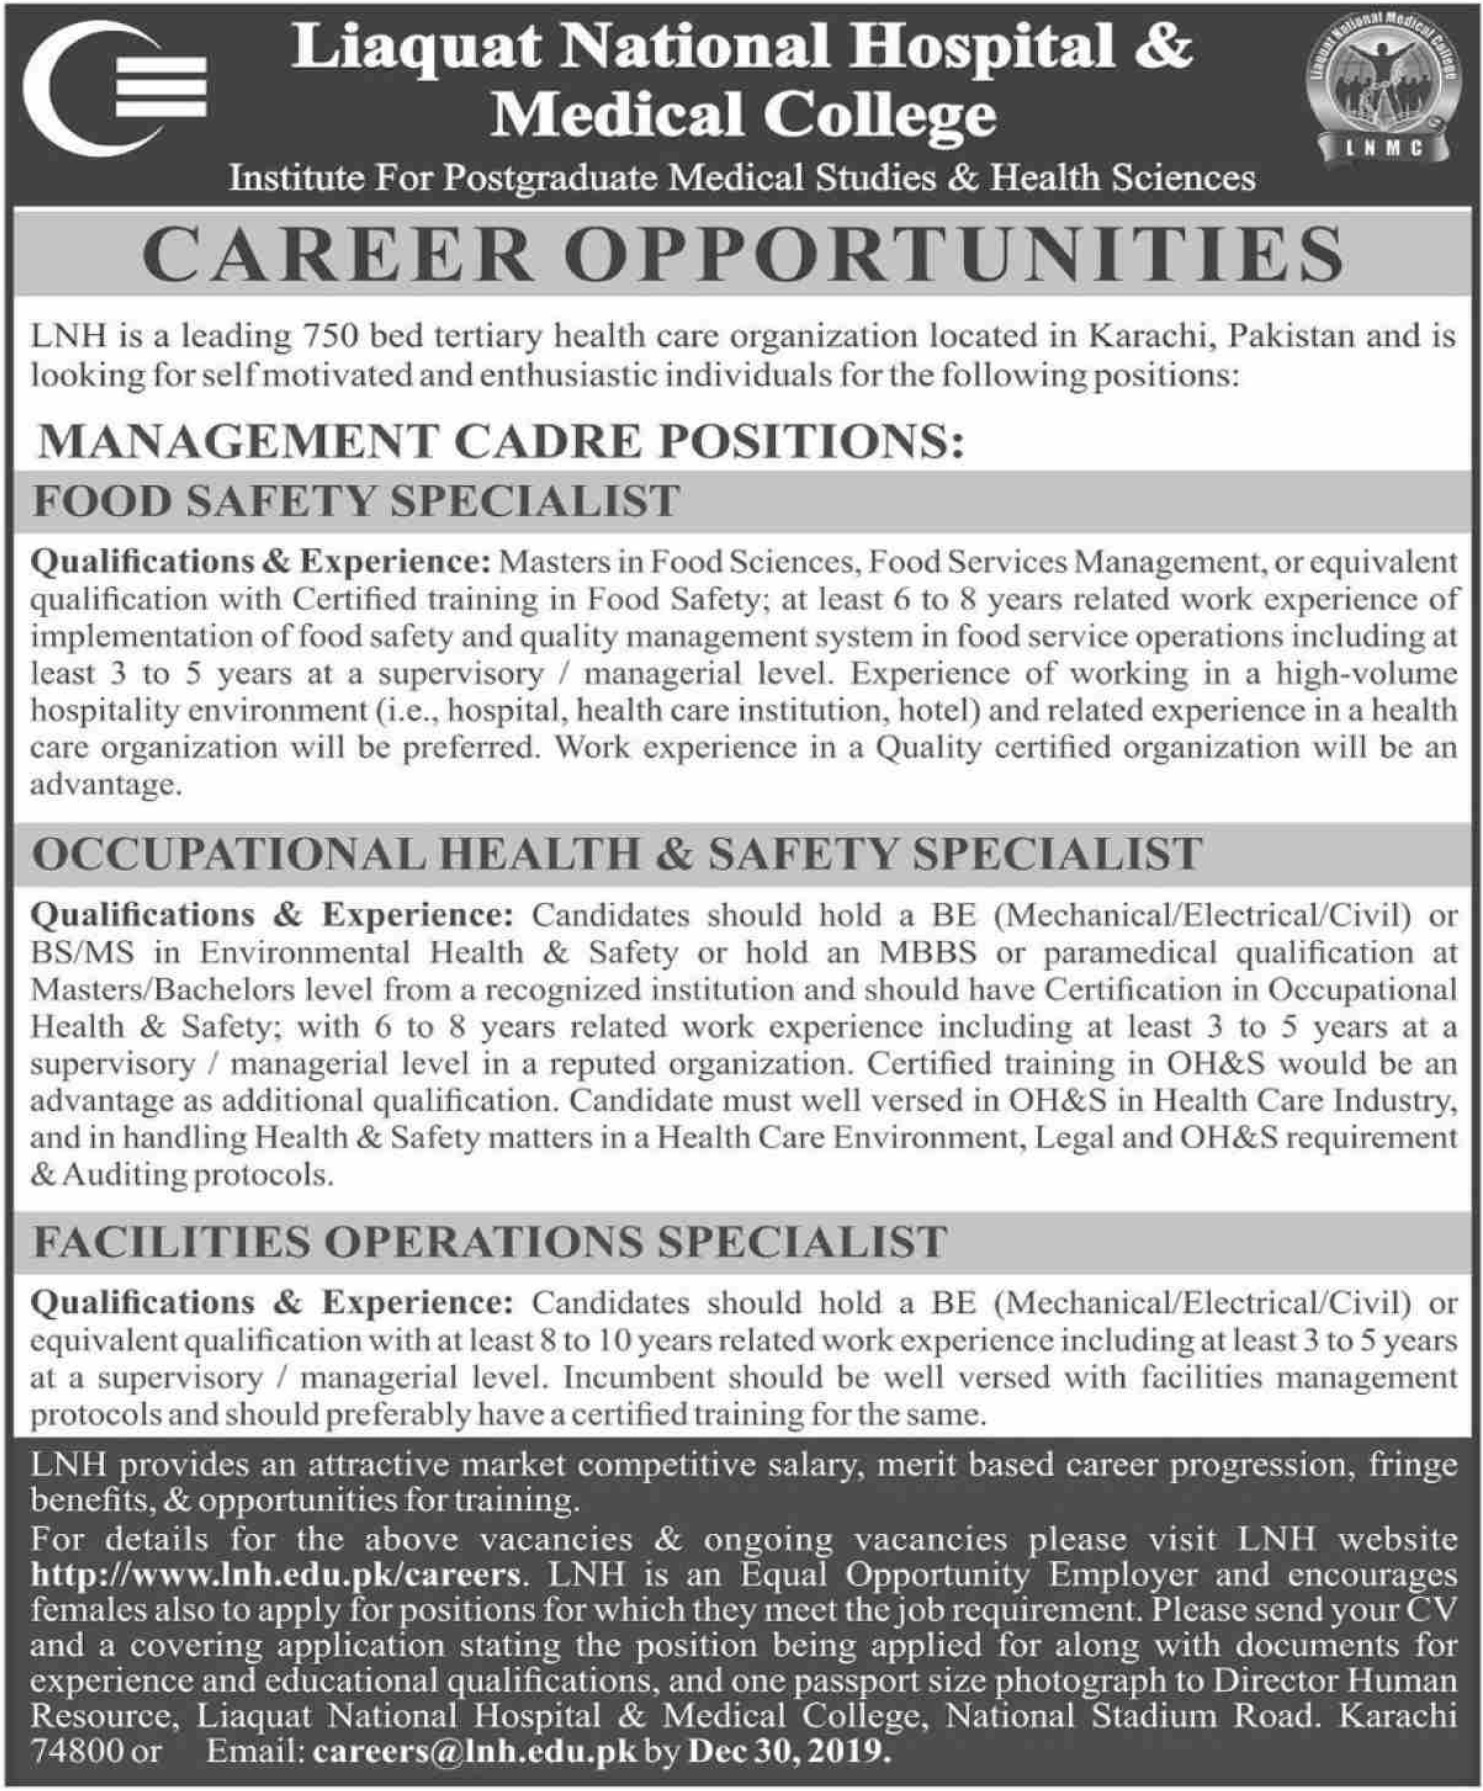 Liauat National Hospital & Medical College Karachi Jobs 2019